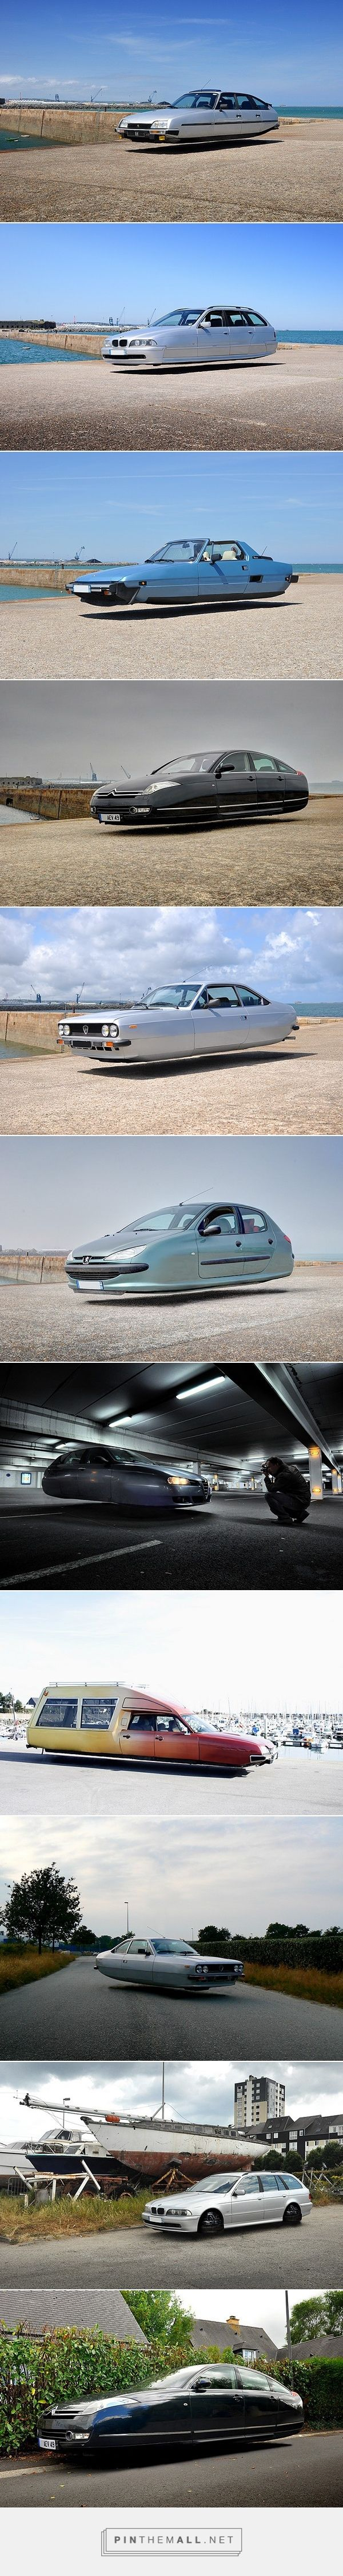 Flying cars on Behance... - a grouped images picture - Pin Them All